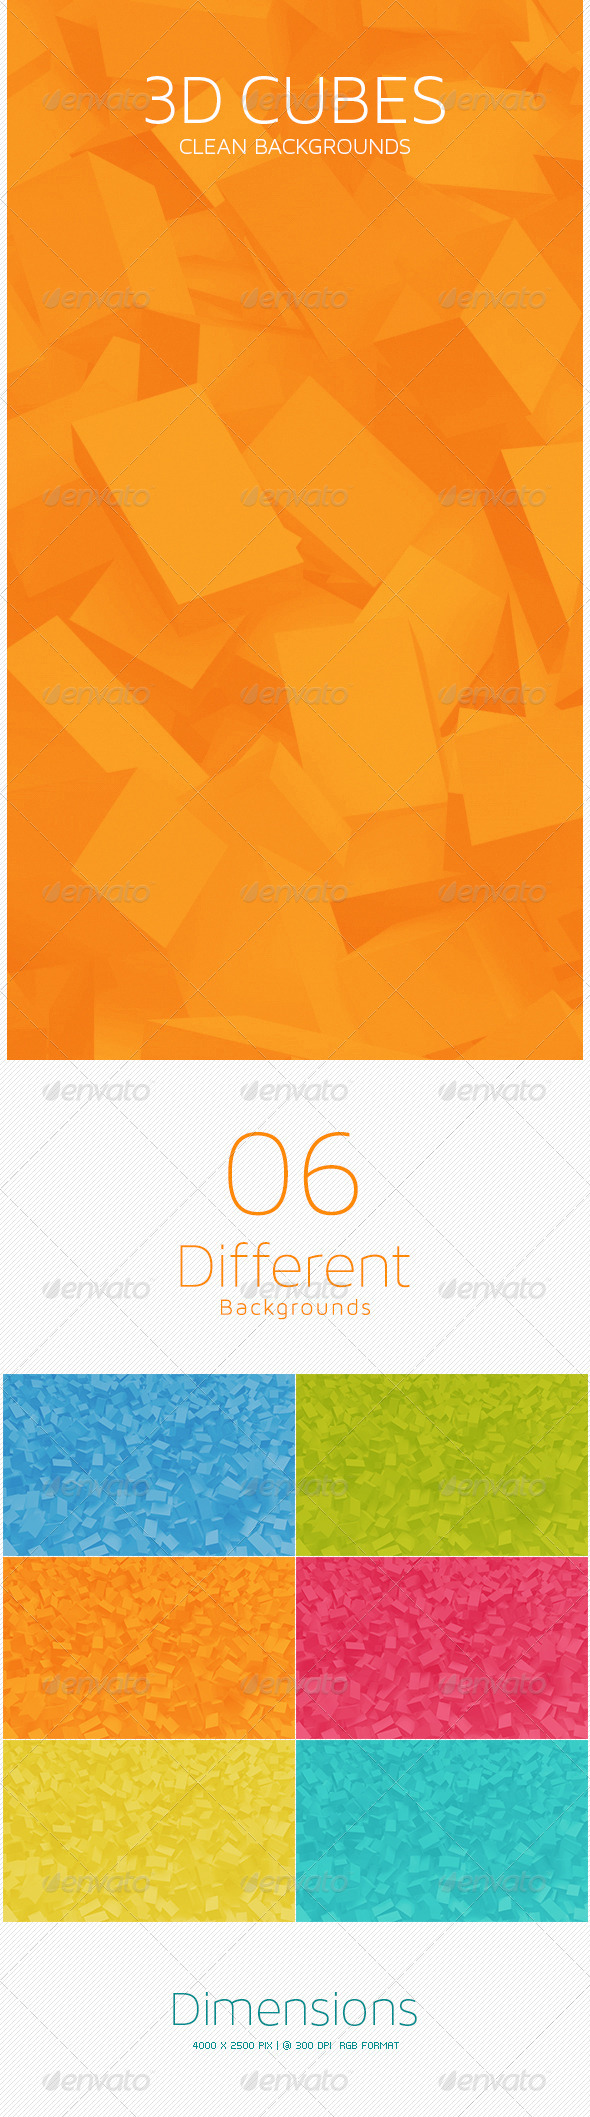 3D Cubes Clean Backgrounds - 3D Backgrounds